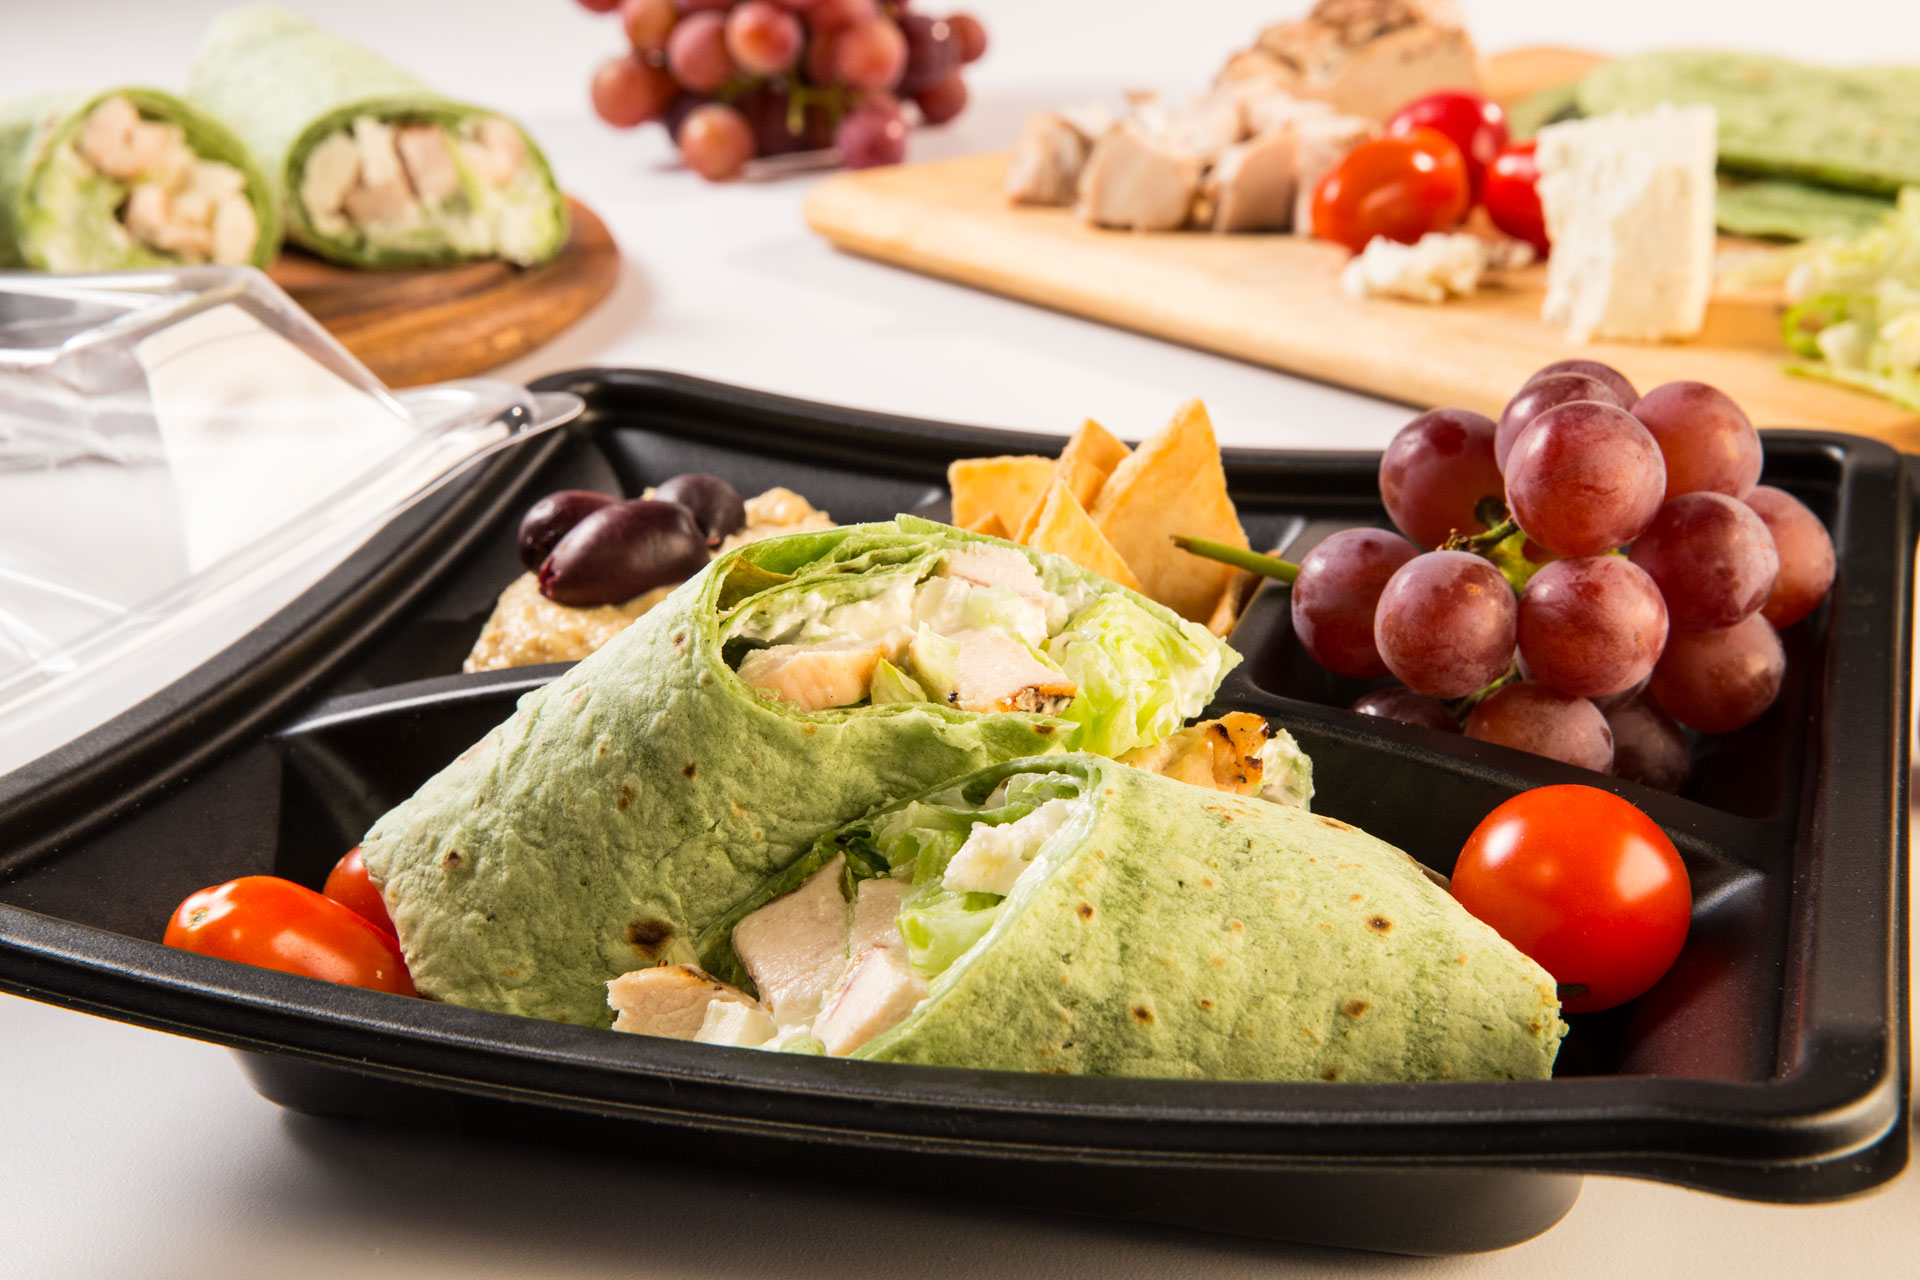 Our healthy Mediterranean-inspired bento box includes a grilled chicken and feta wrap, hummus dip, kalamata olives, crunchy pita chips and fresh grapes.